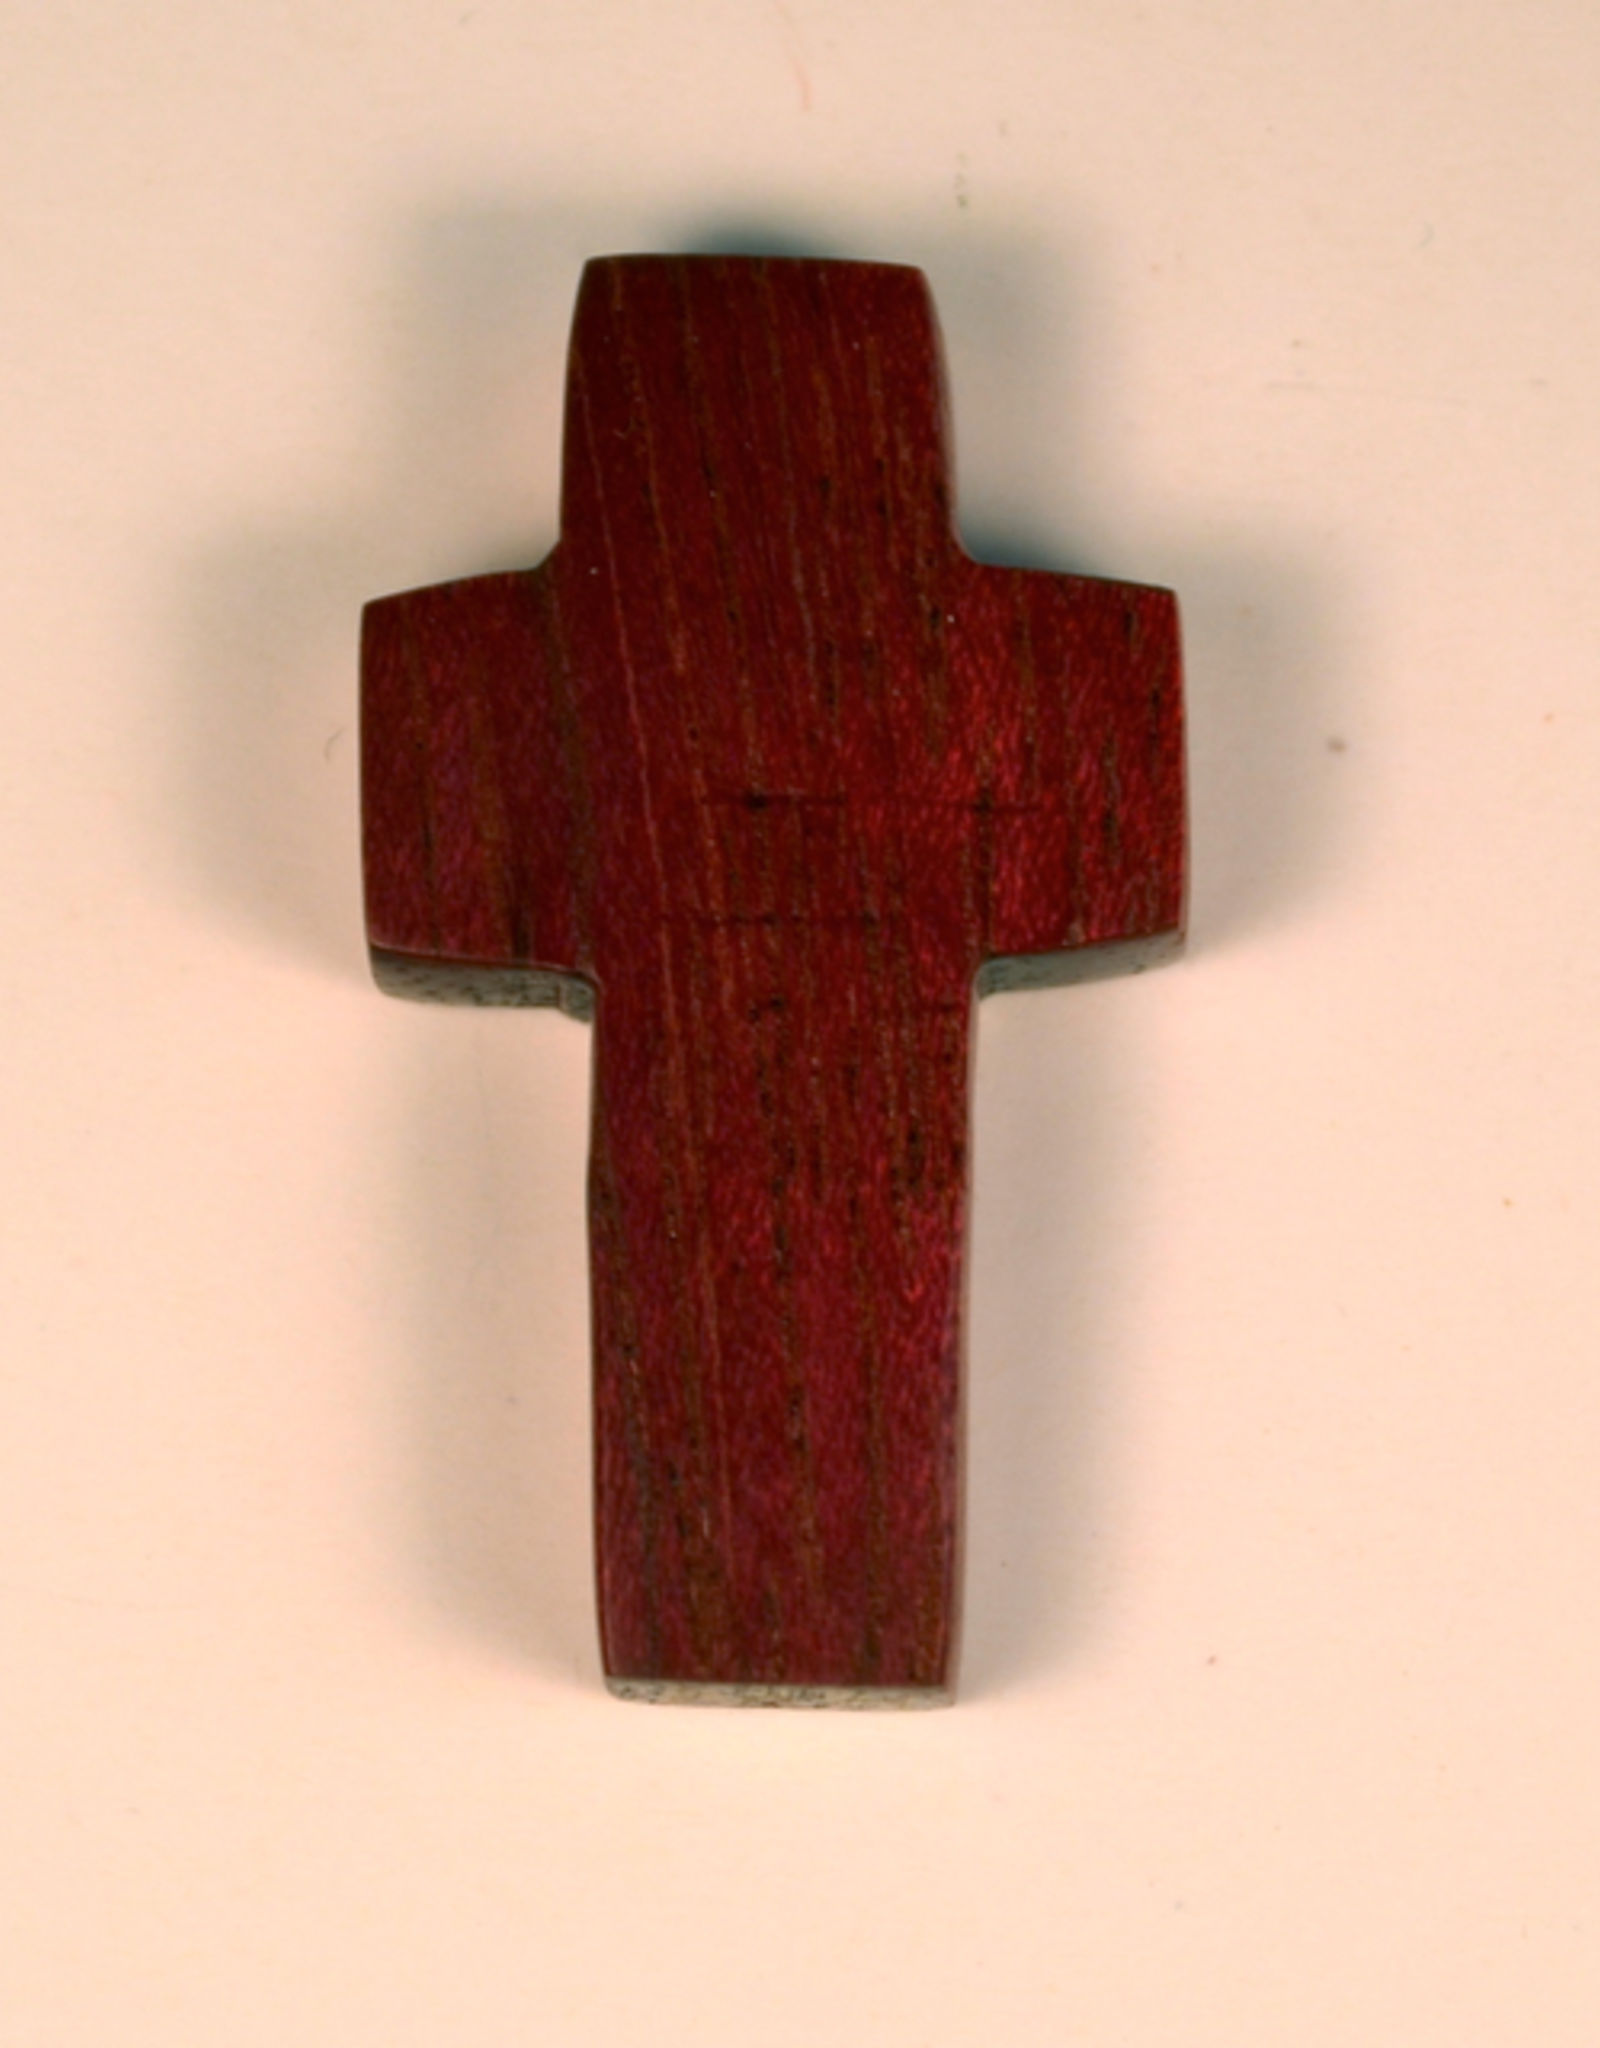 "Merry Crosses 1 1/2"" Merry Hand Crafted Purple Heart Wood Flat Pocket Cross"